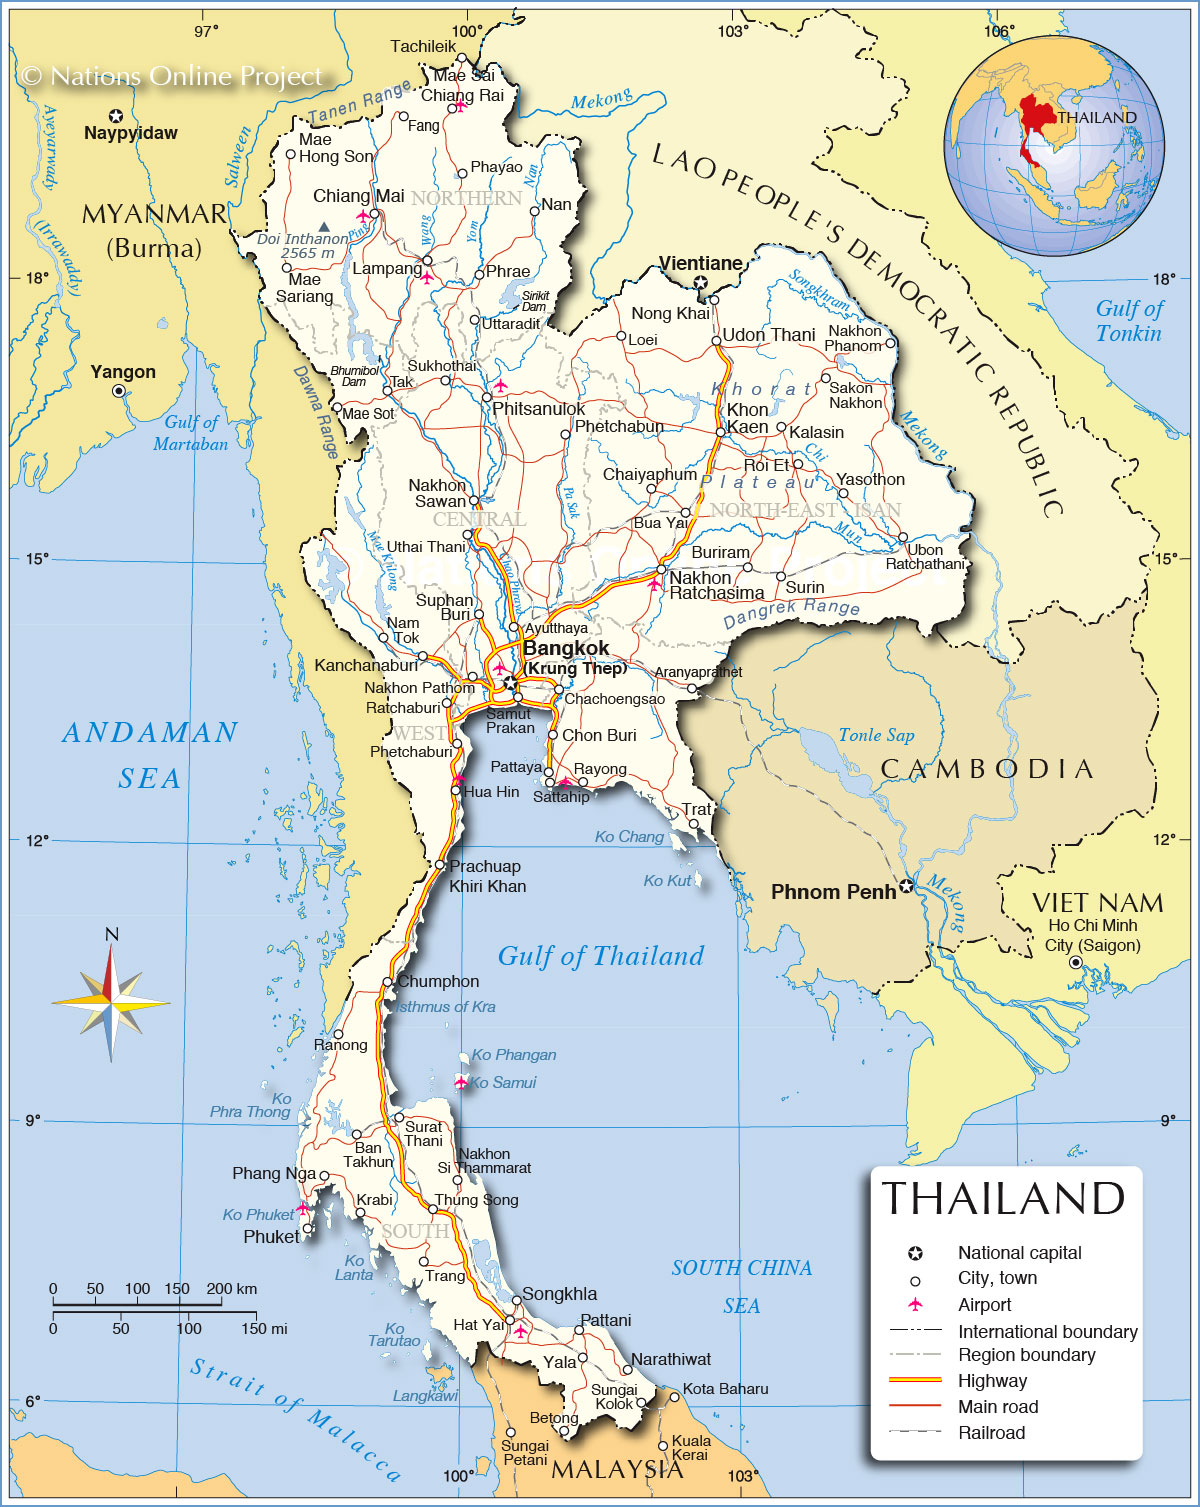 Regions Map of Thailand - Nations Online Project